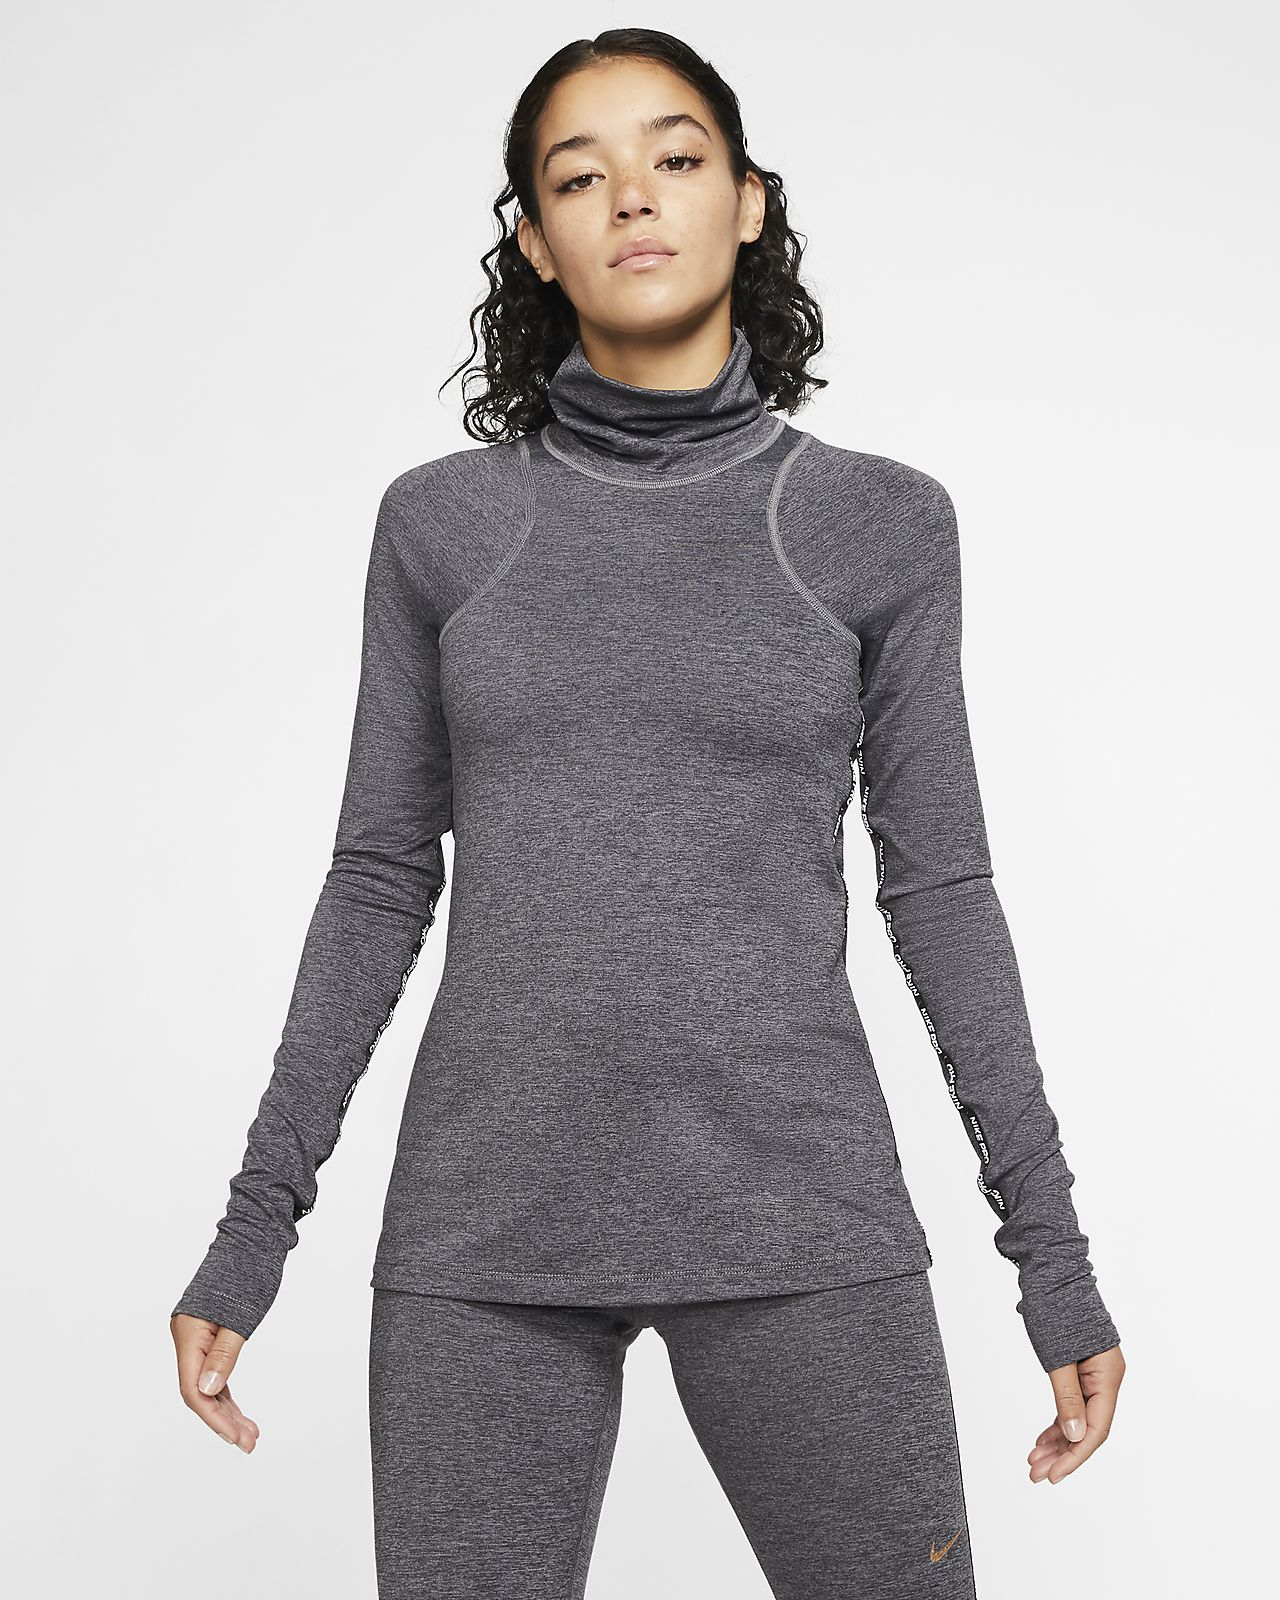 Nike Pro Warm Women's Long-Sleeve Metallic Top